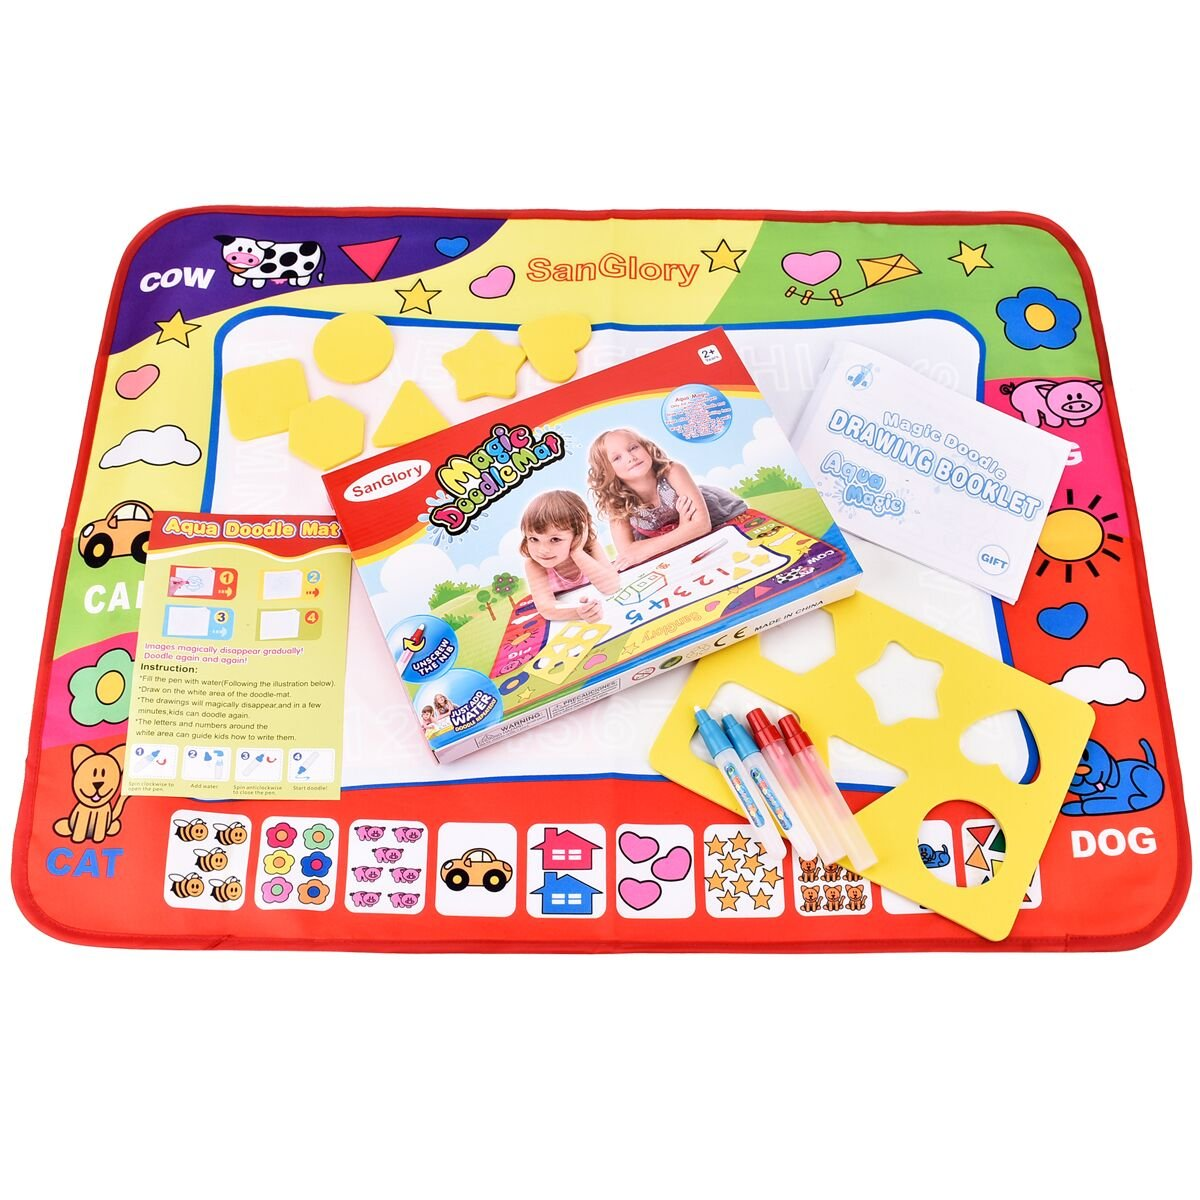 SanGlory Water Doodle Mat Magic Water Drawing Painting Pad With 4 Water Pen & 6 Stamps & a Doodle Water Book - Best Handwriting Gifts for Boys & Girls Age 2 3 4 5 6+ Years Old (Gift Box package)